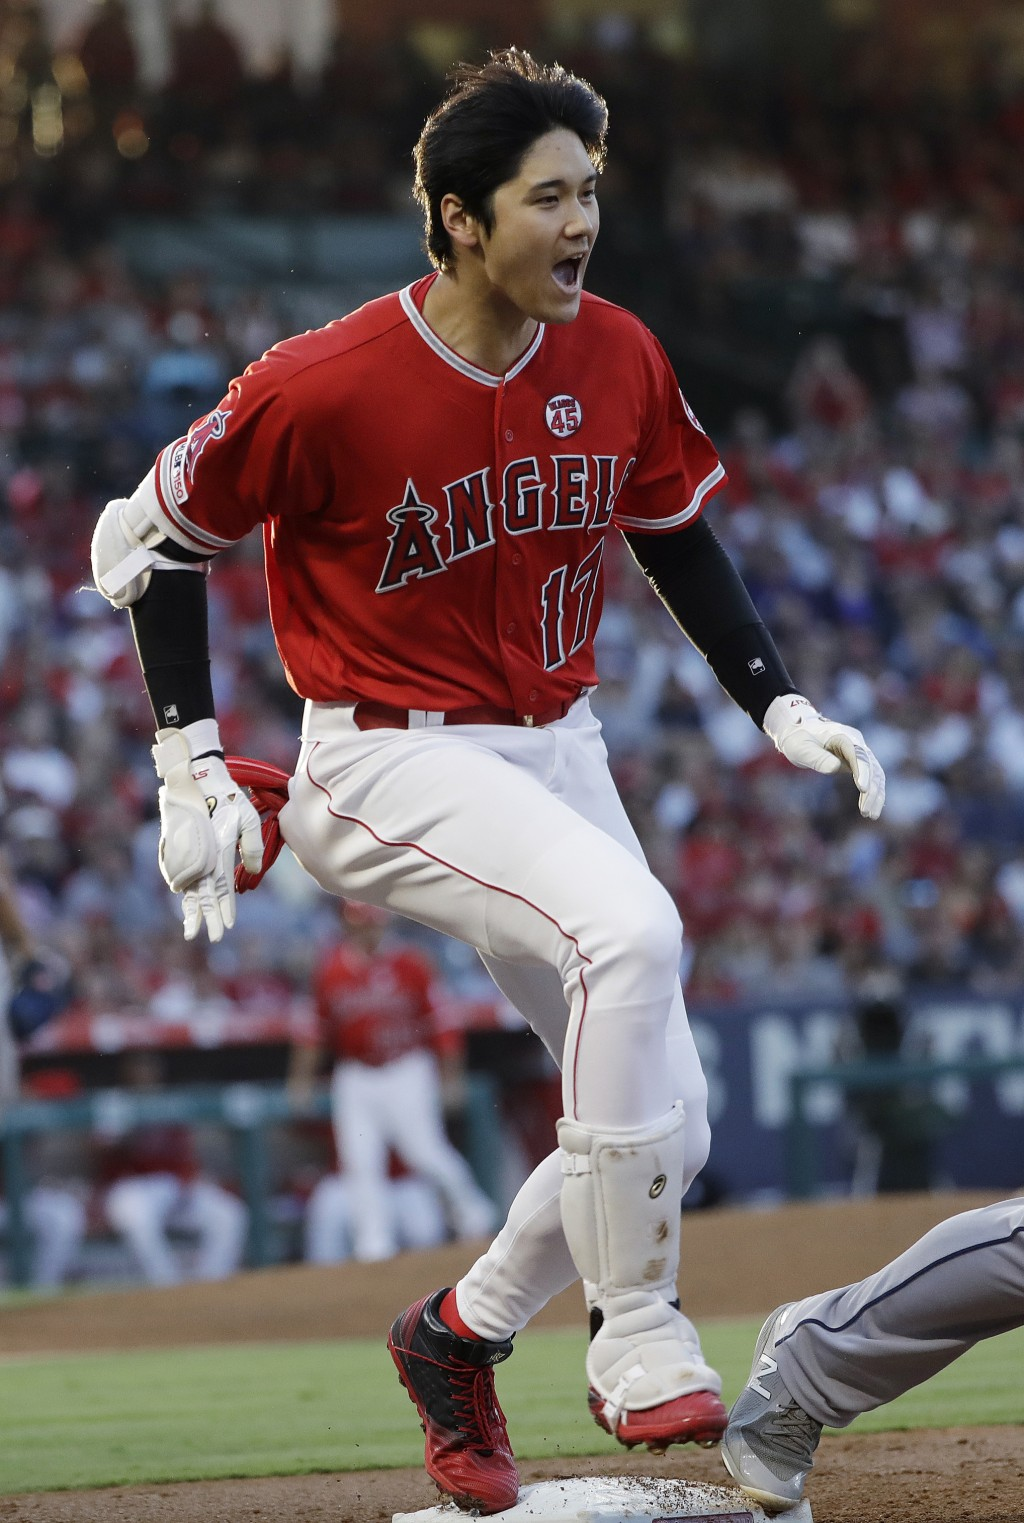 Los Angeles Angels' Shohei Ohtani reaches first base with an RBI infield single against the Houston Astros during the first inning of a baseball game